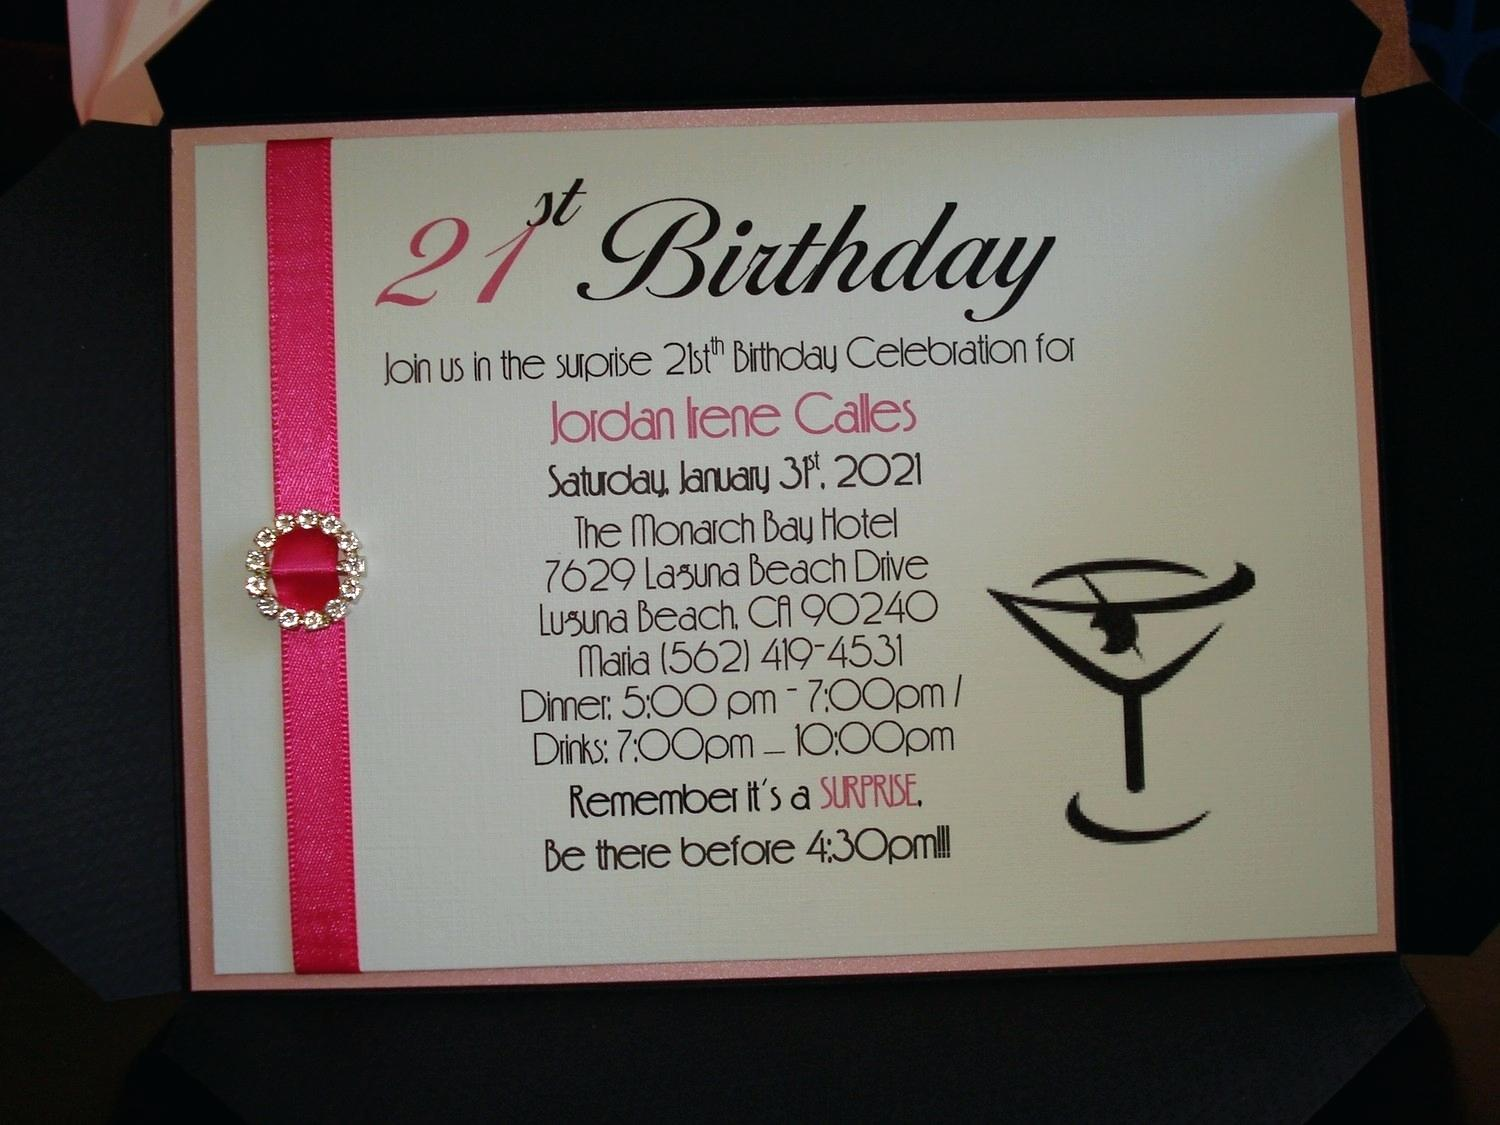 21st birthday photo invitation templates ; 21st-birthday-party-invitation-template-invitations-wording-templates-free